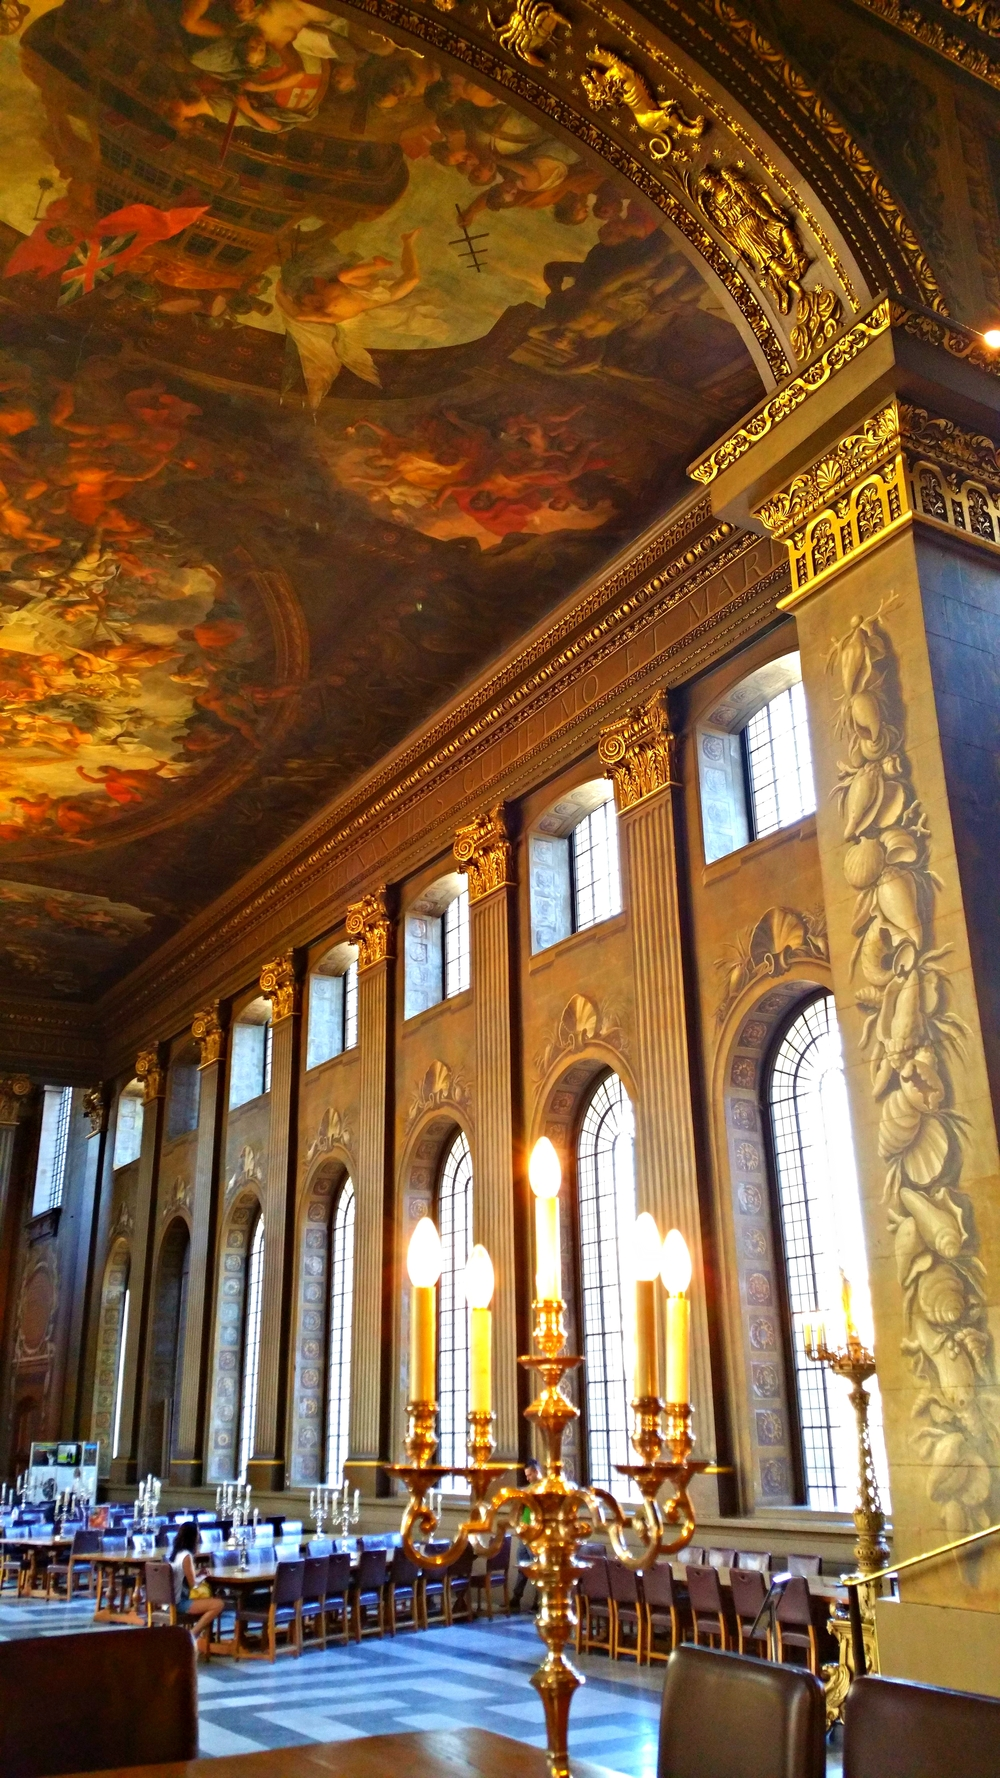 The breathtaking Painted Hall of the Royal Naval College